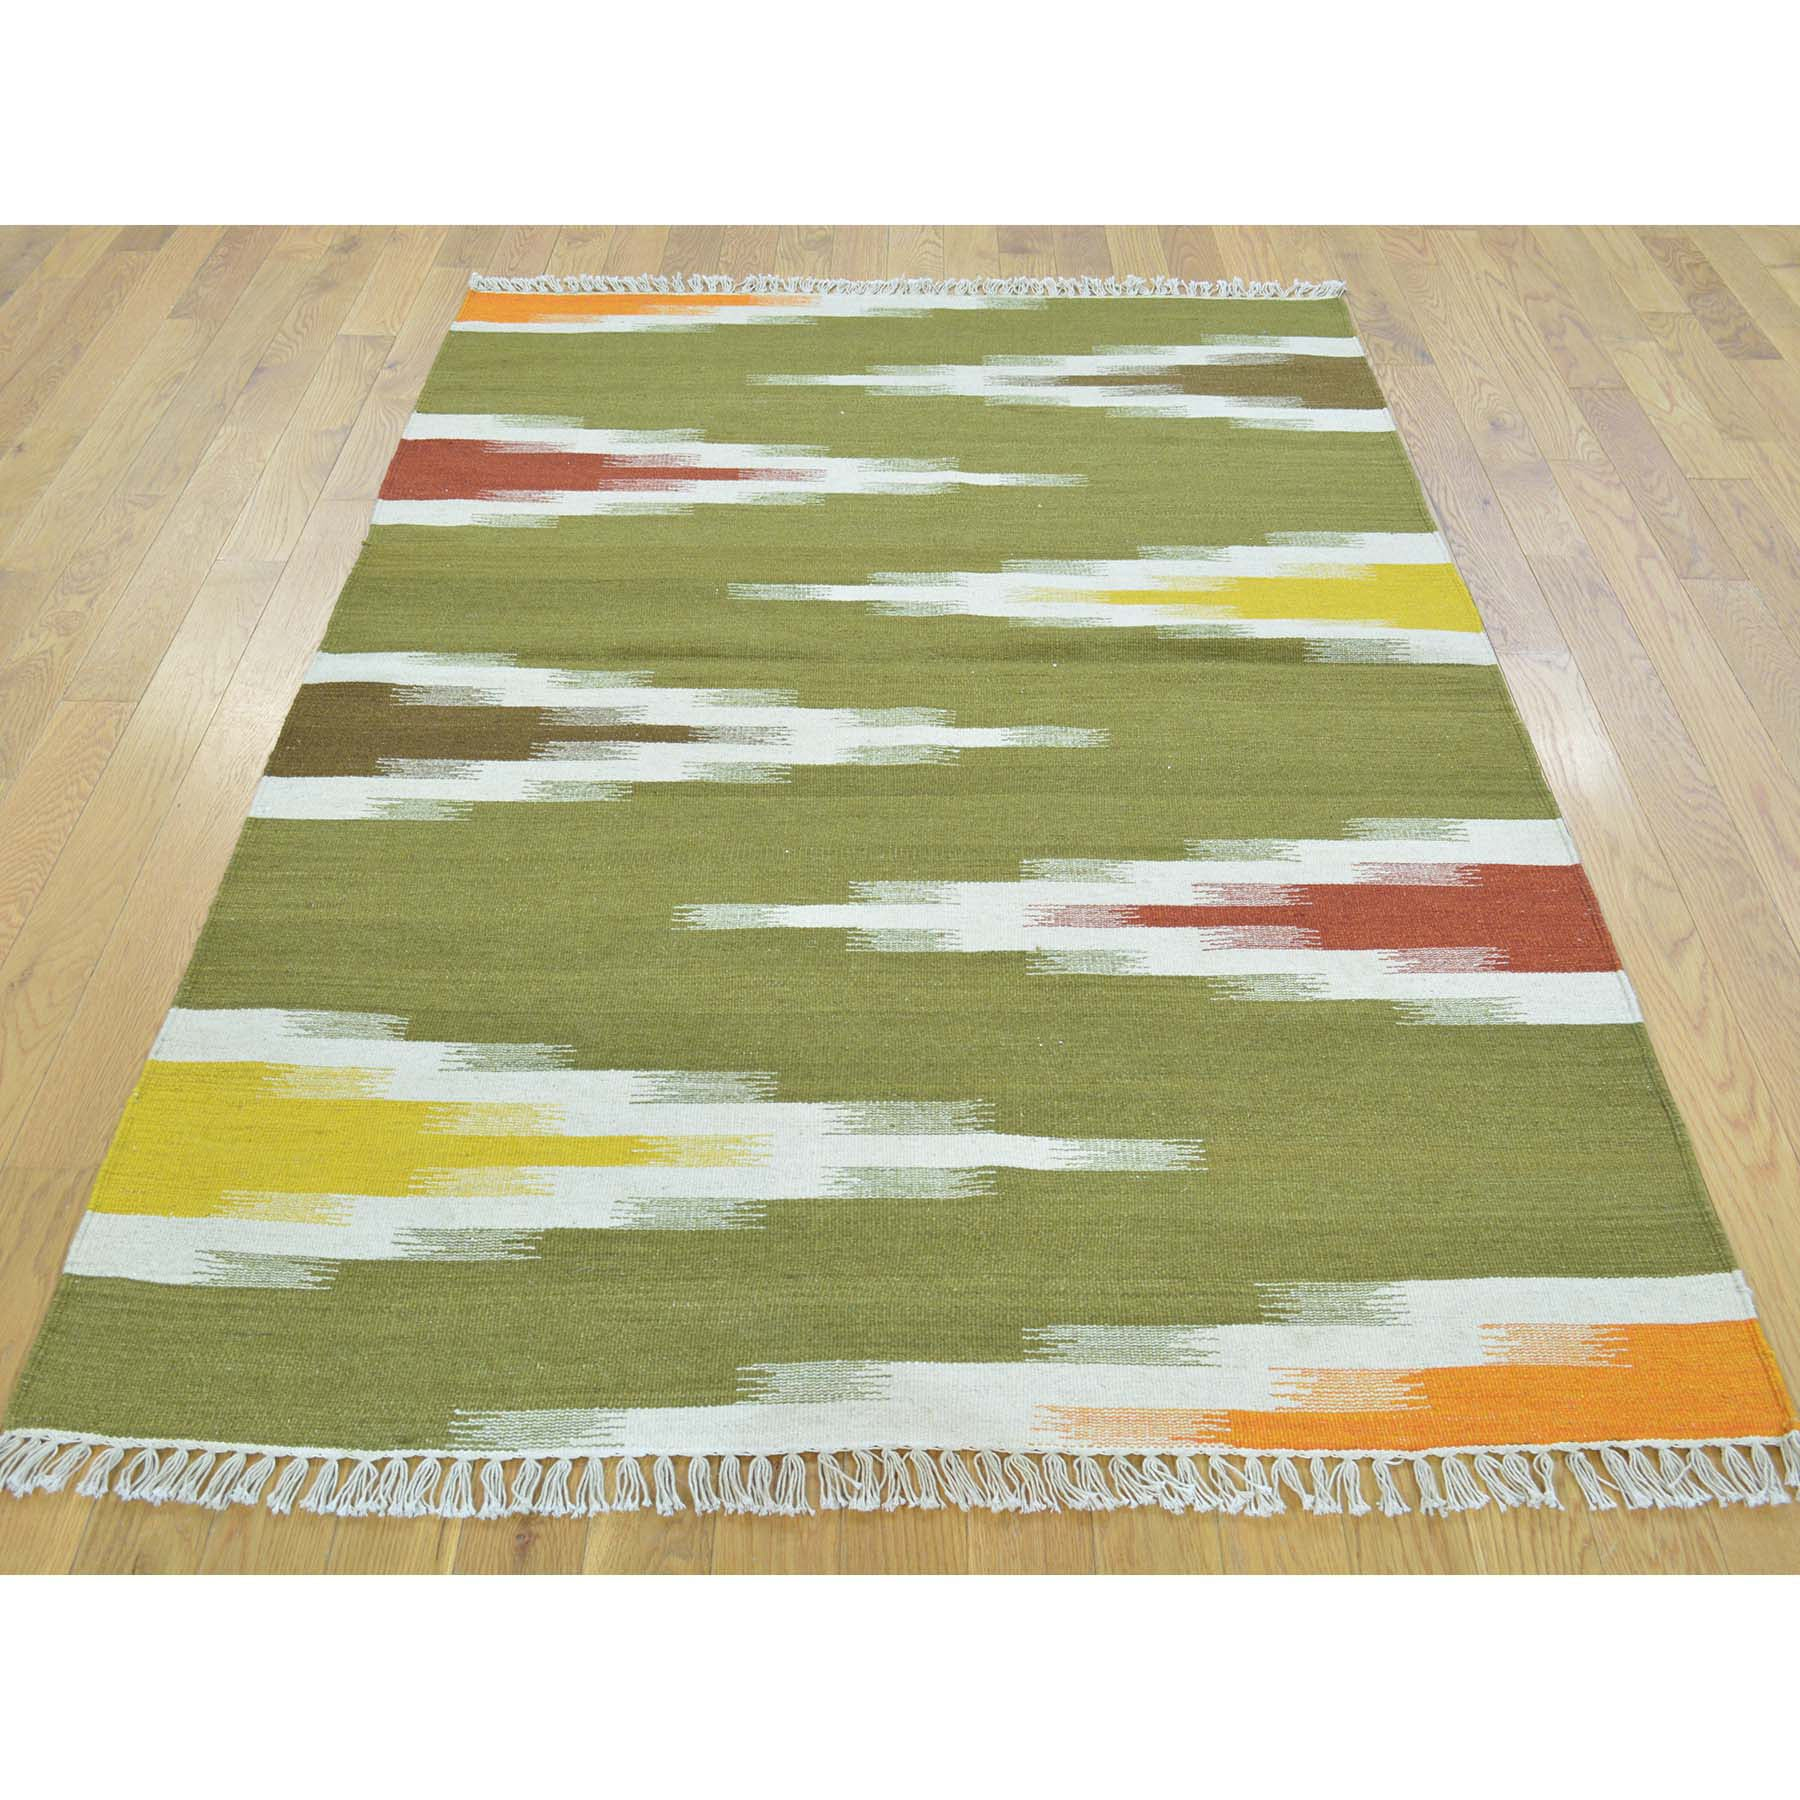 "Handmade Flat Weave Rectangle Rug > Design# SH30118 > Size: 4'-1"" x 6'-3"" [ONLINE ONLY]"